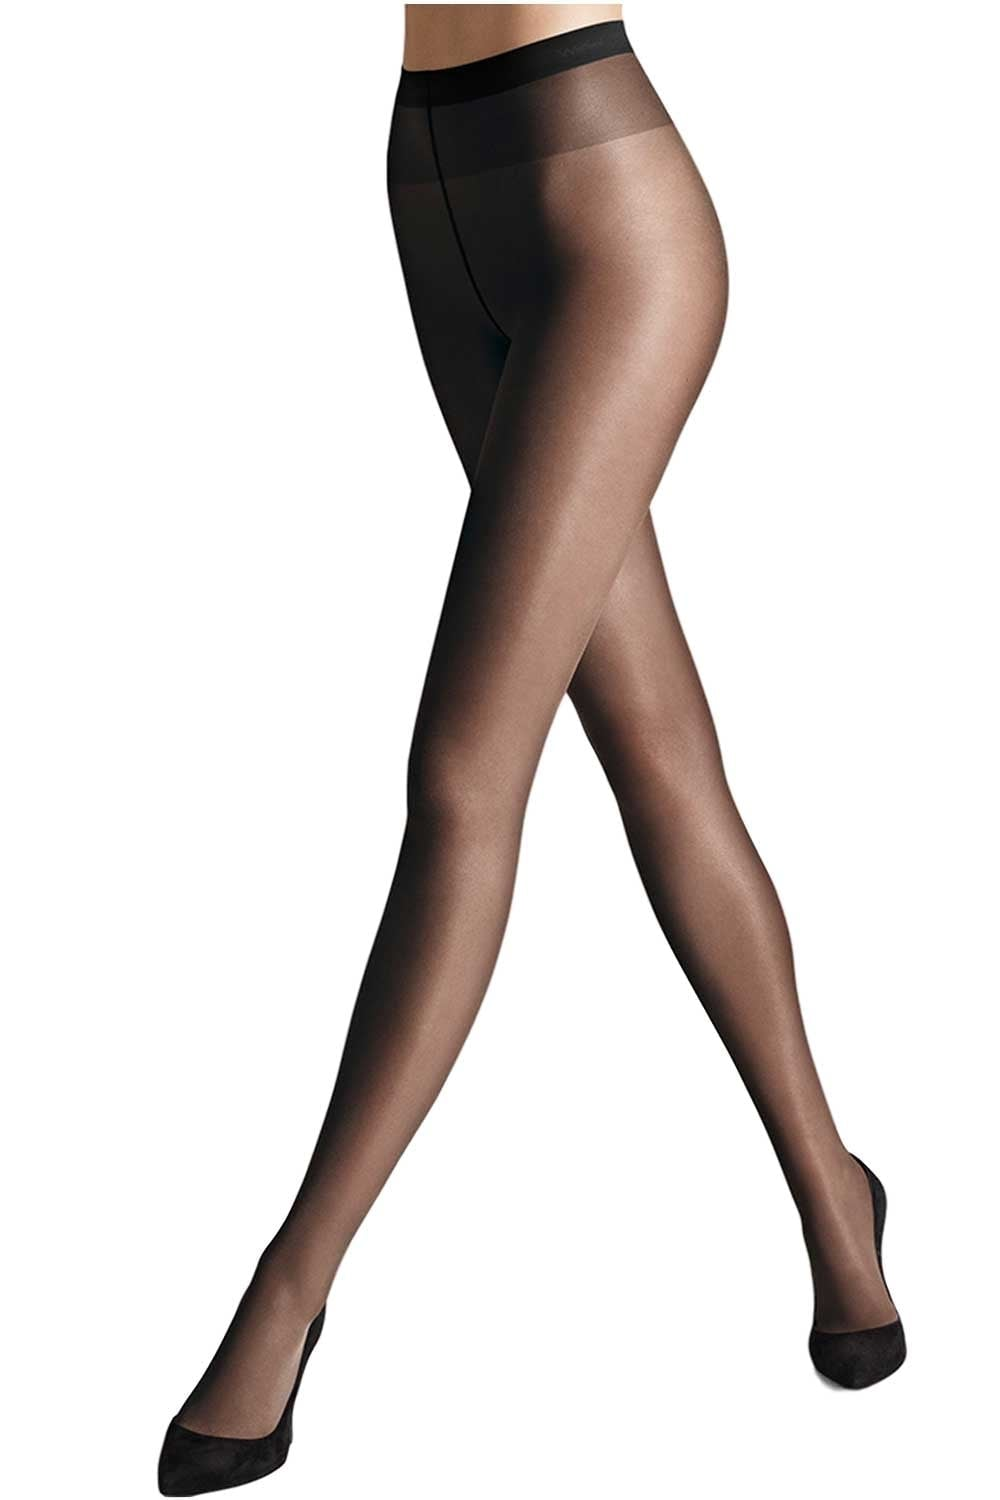 eb15c1690d041 Wolford Satin Touch 20 Tights | Wolford Satin Touch 20 Denier Tights